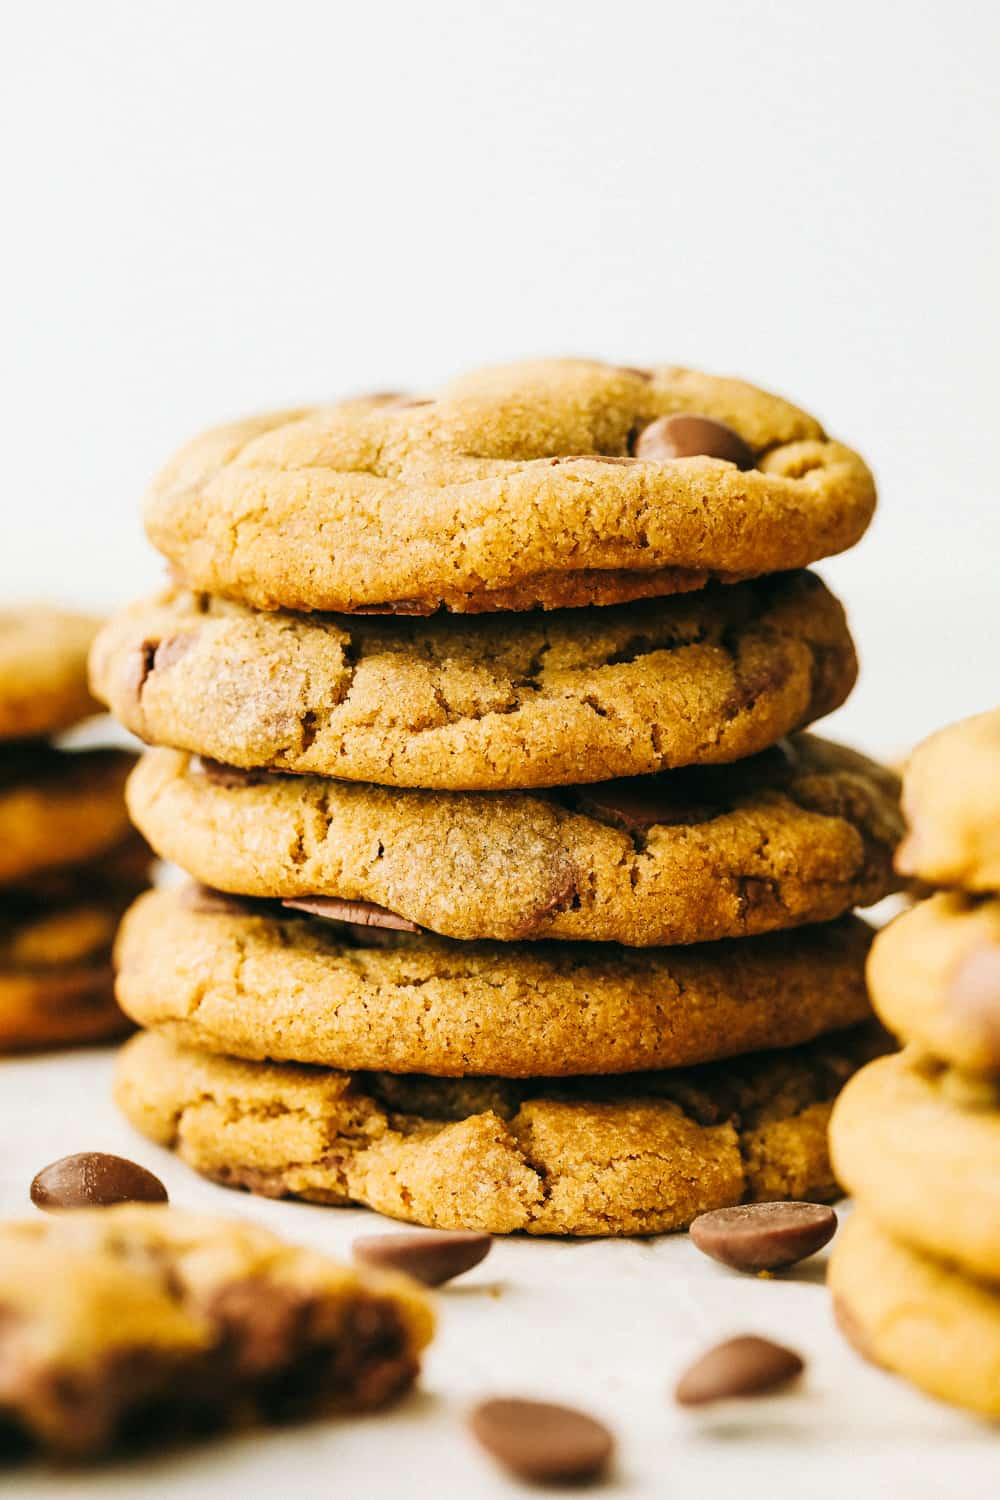 Browned Butter Chocolate Chip Cookies that are thick chewy and amazing.